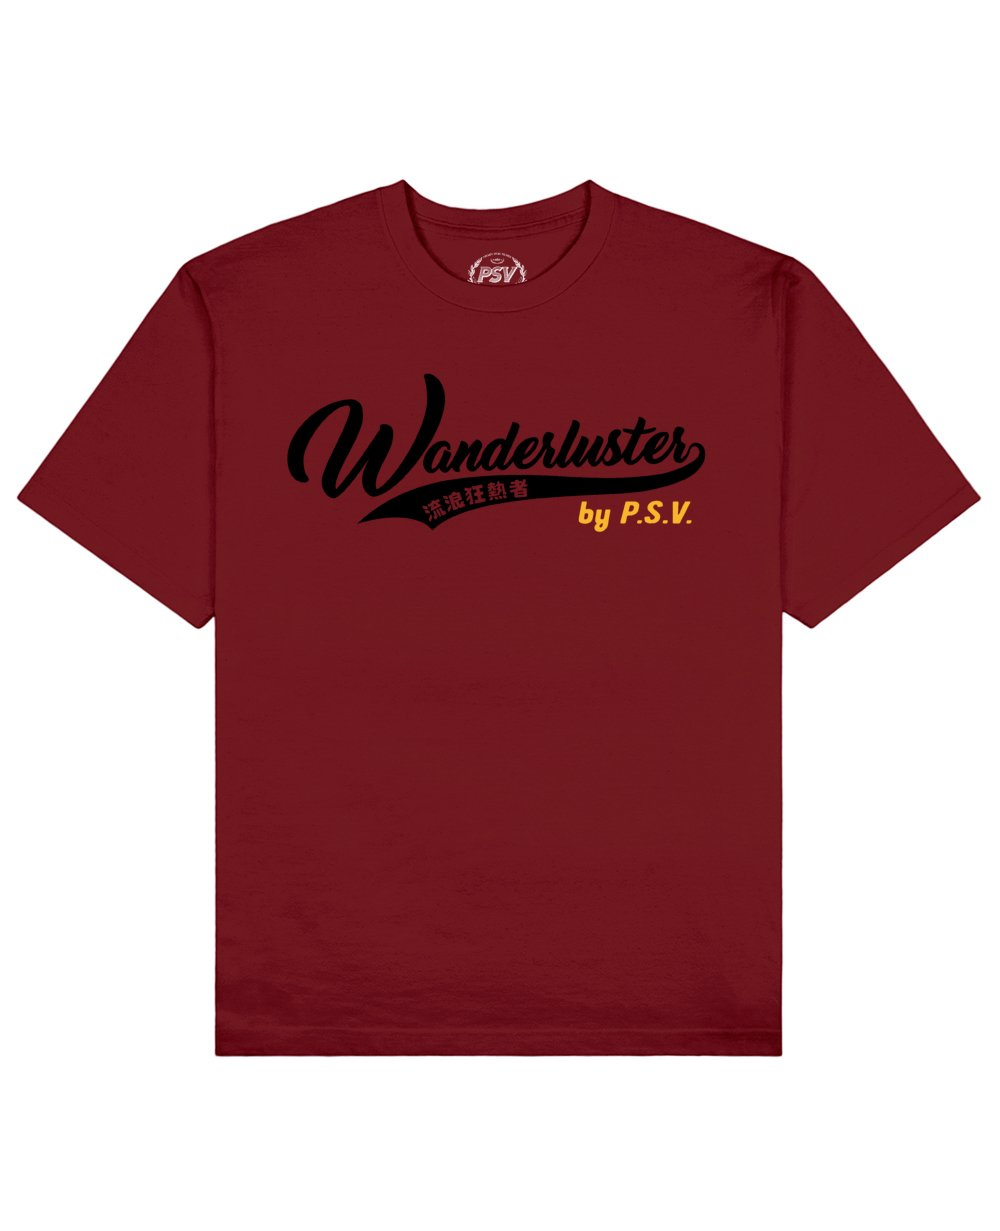 Wanderluster Print T-Shirt in Red - T-Shirts - PSV - BRANMA